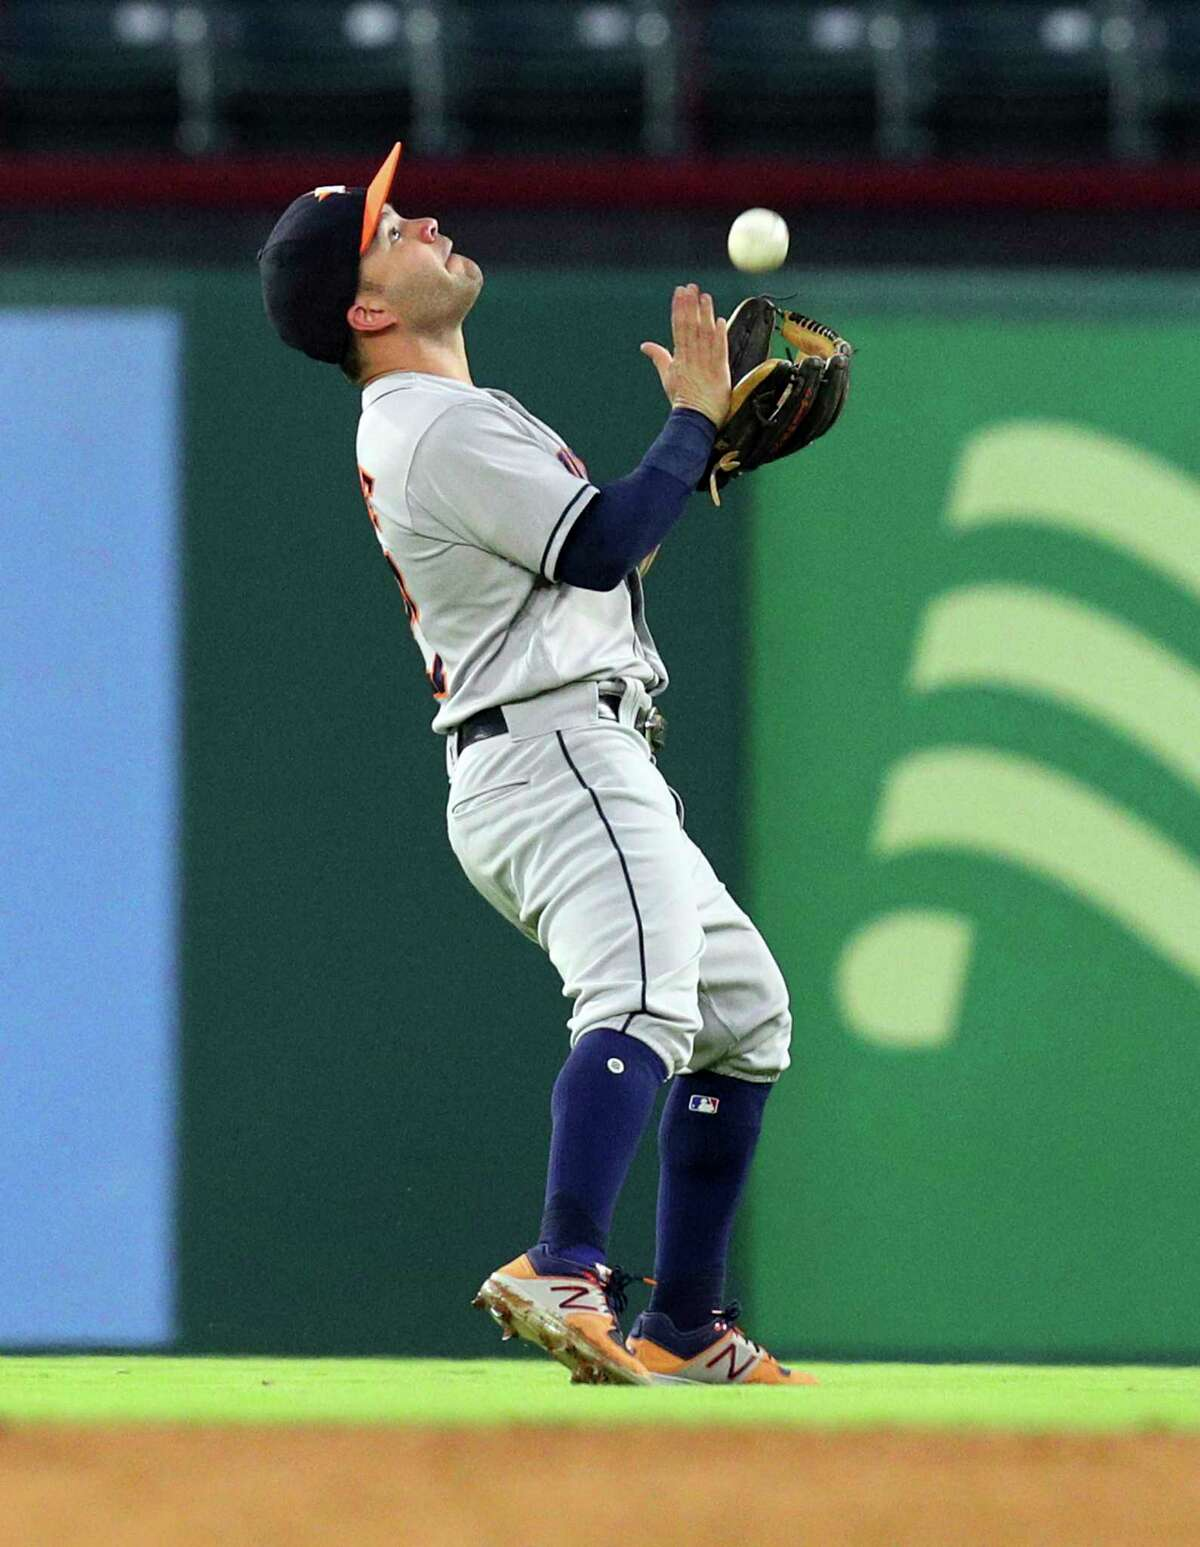 Houston Astros second baseman Jose Altuve catches a fly ball by Texas Rangers' Adrian Beltre in the first inning of a baseball game Monday, Sept. 25, 2017, in Arlington Texas. (AP Photo/Richard W. Rodriguez)